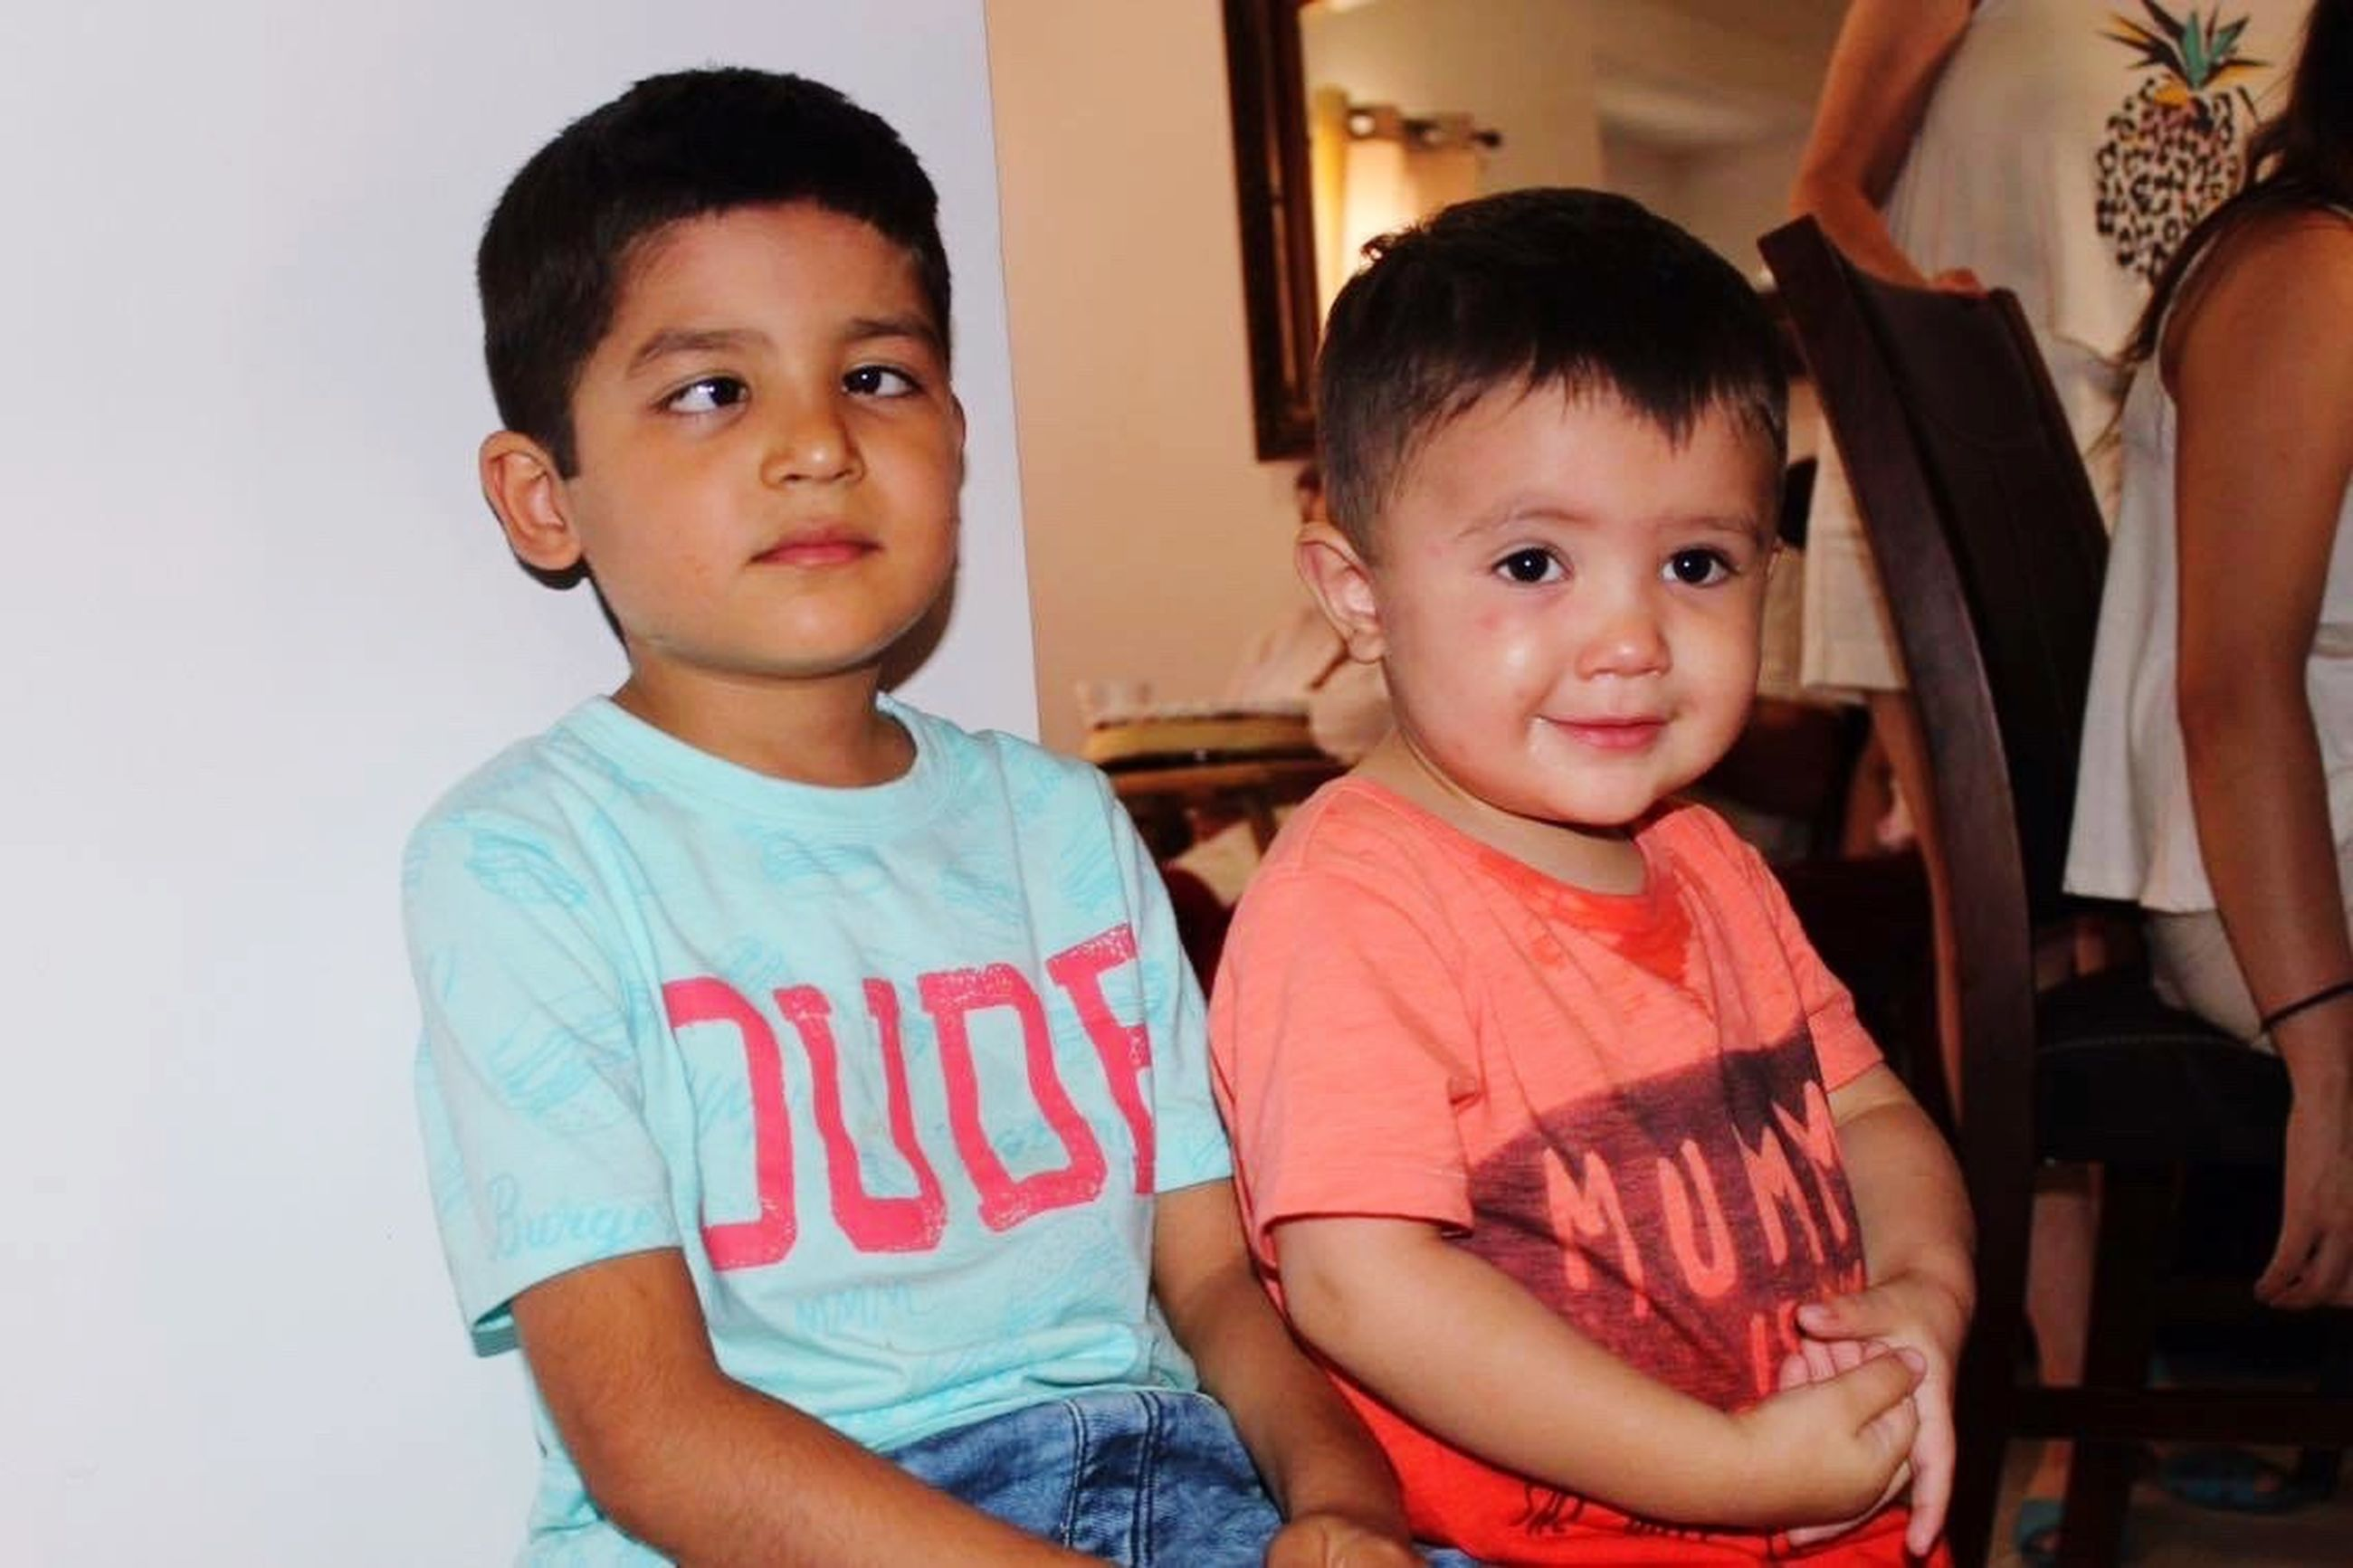 person, childhood, togetherness, lifestyles, bonding, indoors, elementary age, boys, casual clothing, leisure activity, portrait, smiling, happiness, looking at camera, love, front view, cute